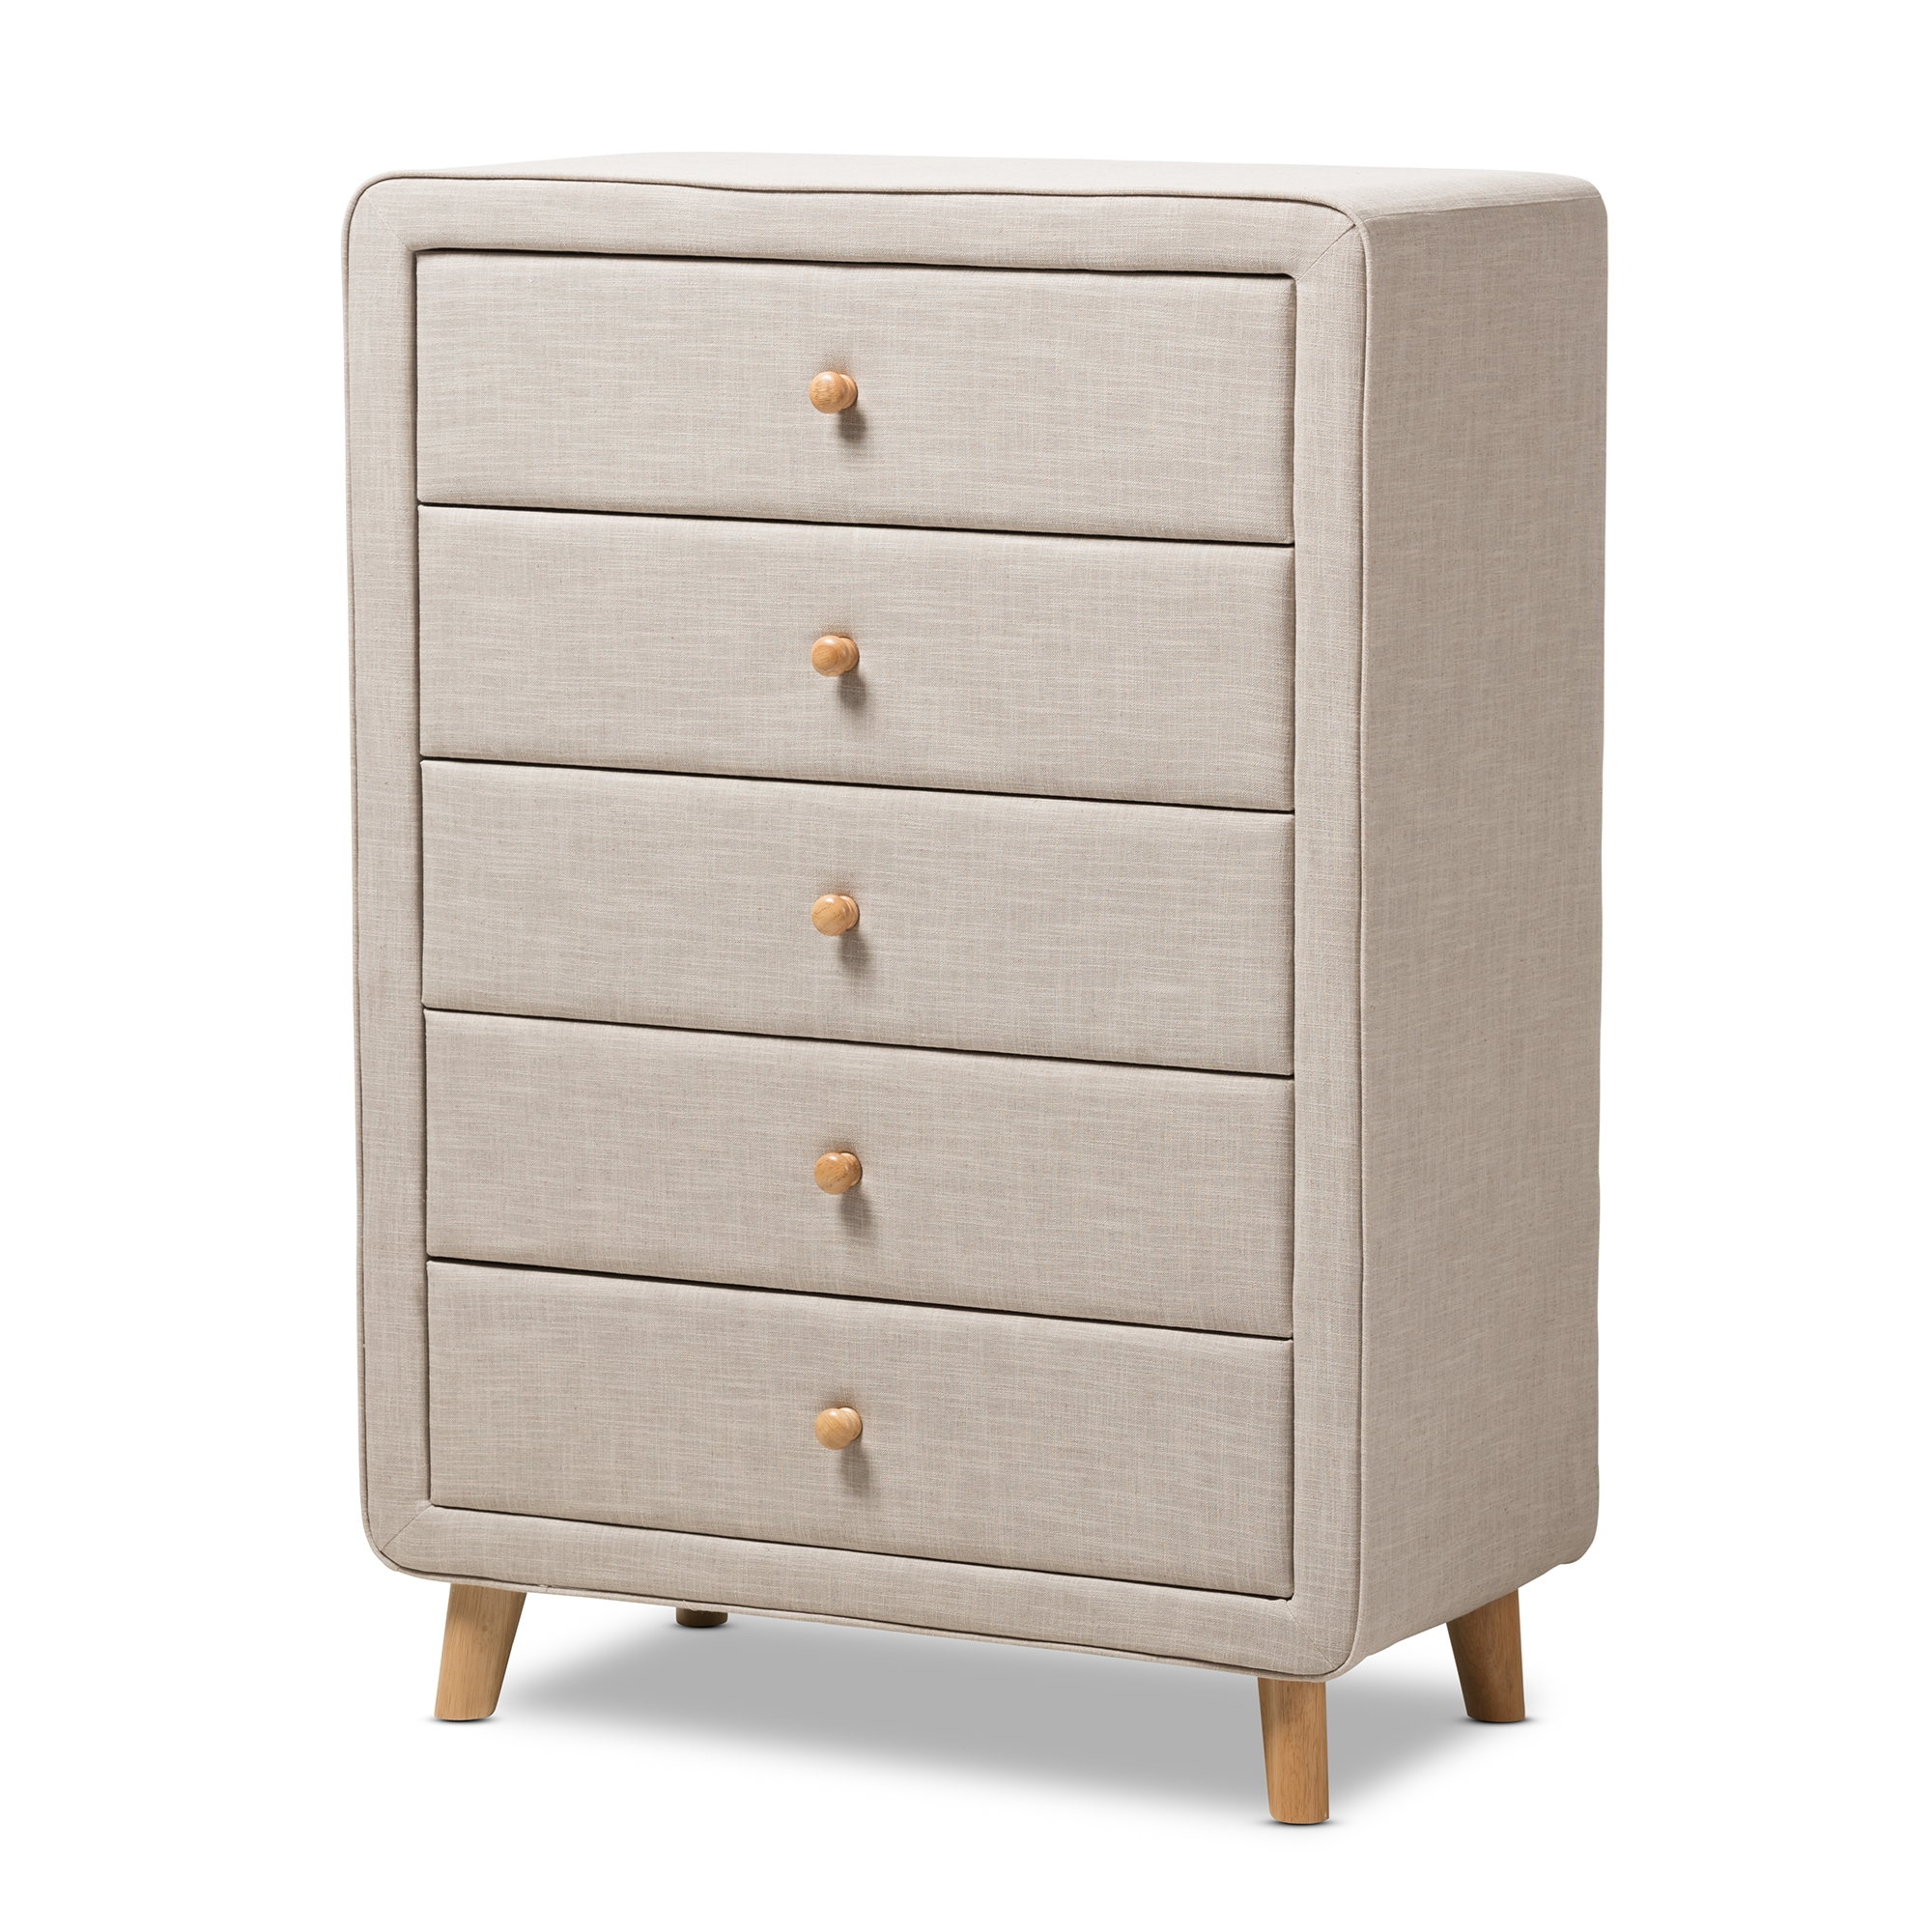 12 Drawer Chest Of Drawers Baxton Studio Jonesy Mid Century Beige Linen Upholstered 5 Drawer Chest